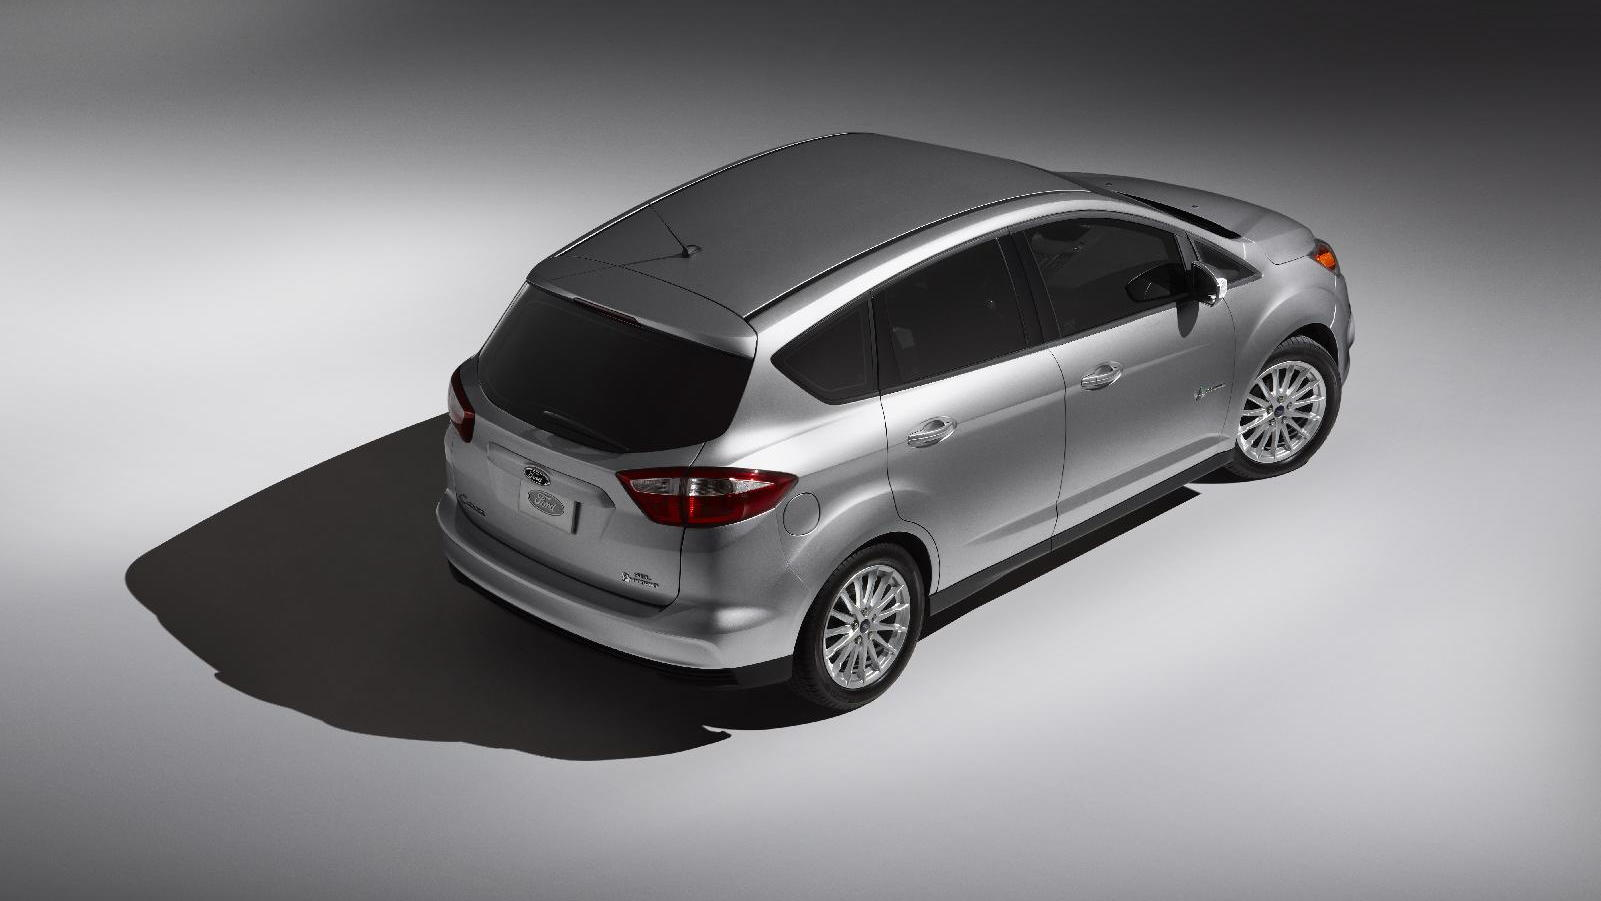 Ford C-Max Hybrid, first revealed at the 2011 Detroit Auto Show